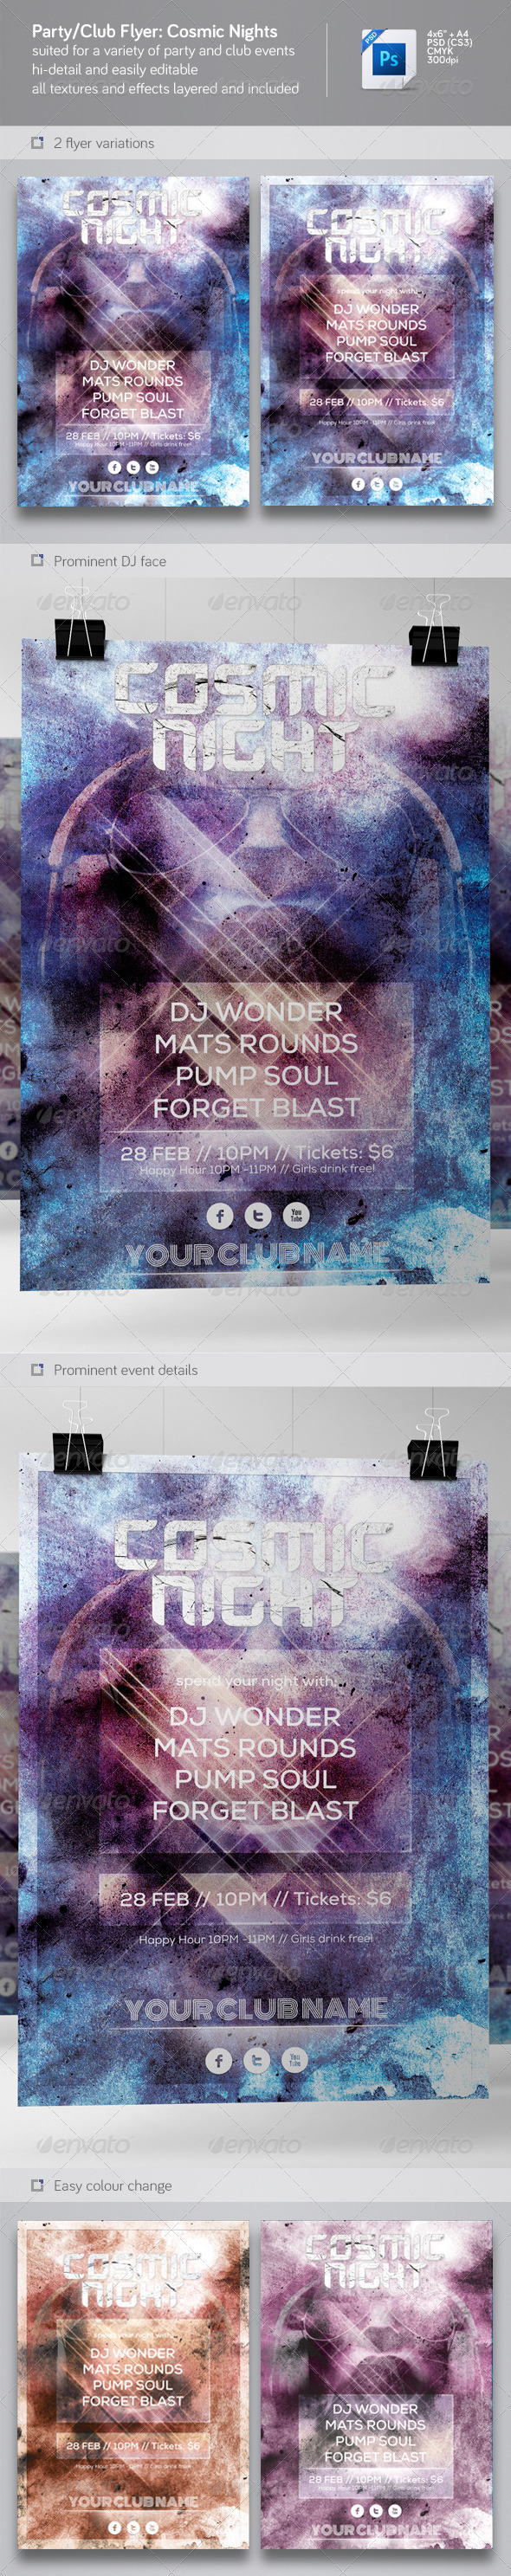 GraphicRiver Party & Nightclub Flyer Cosmic Nights 6207507